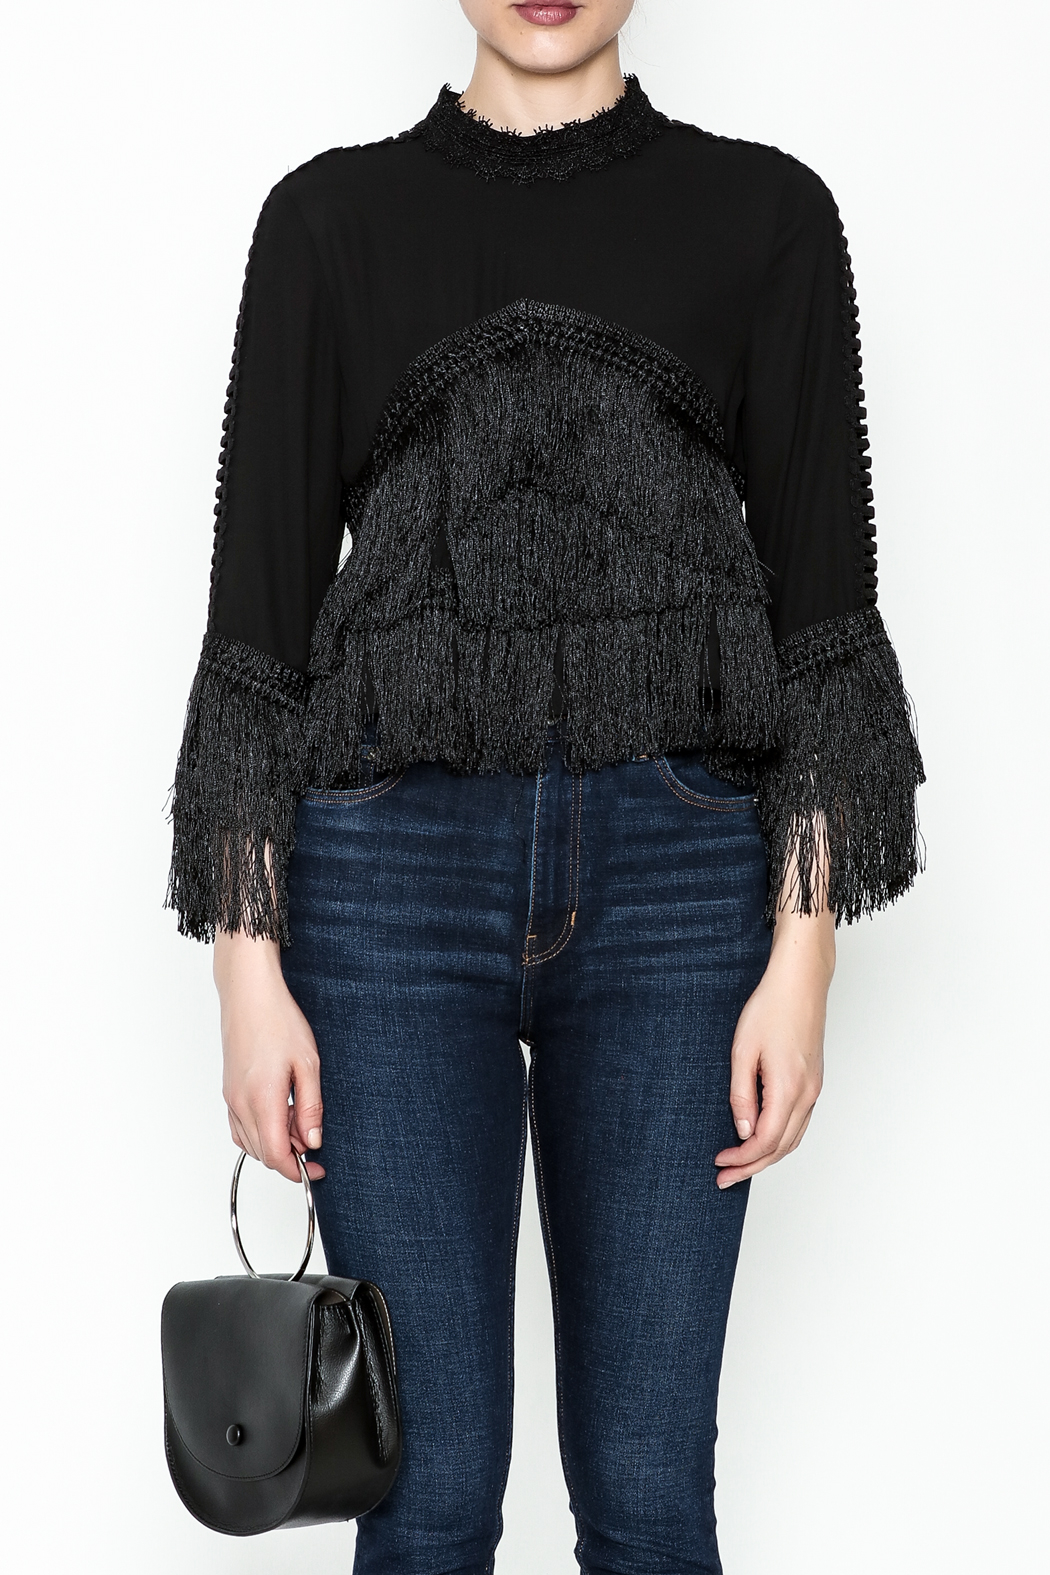 Gracia Layered Fringe Top - Front Full Image